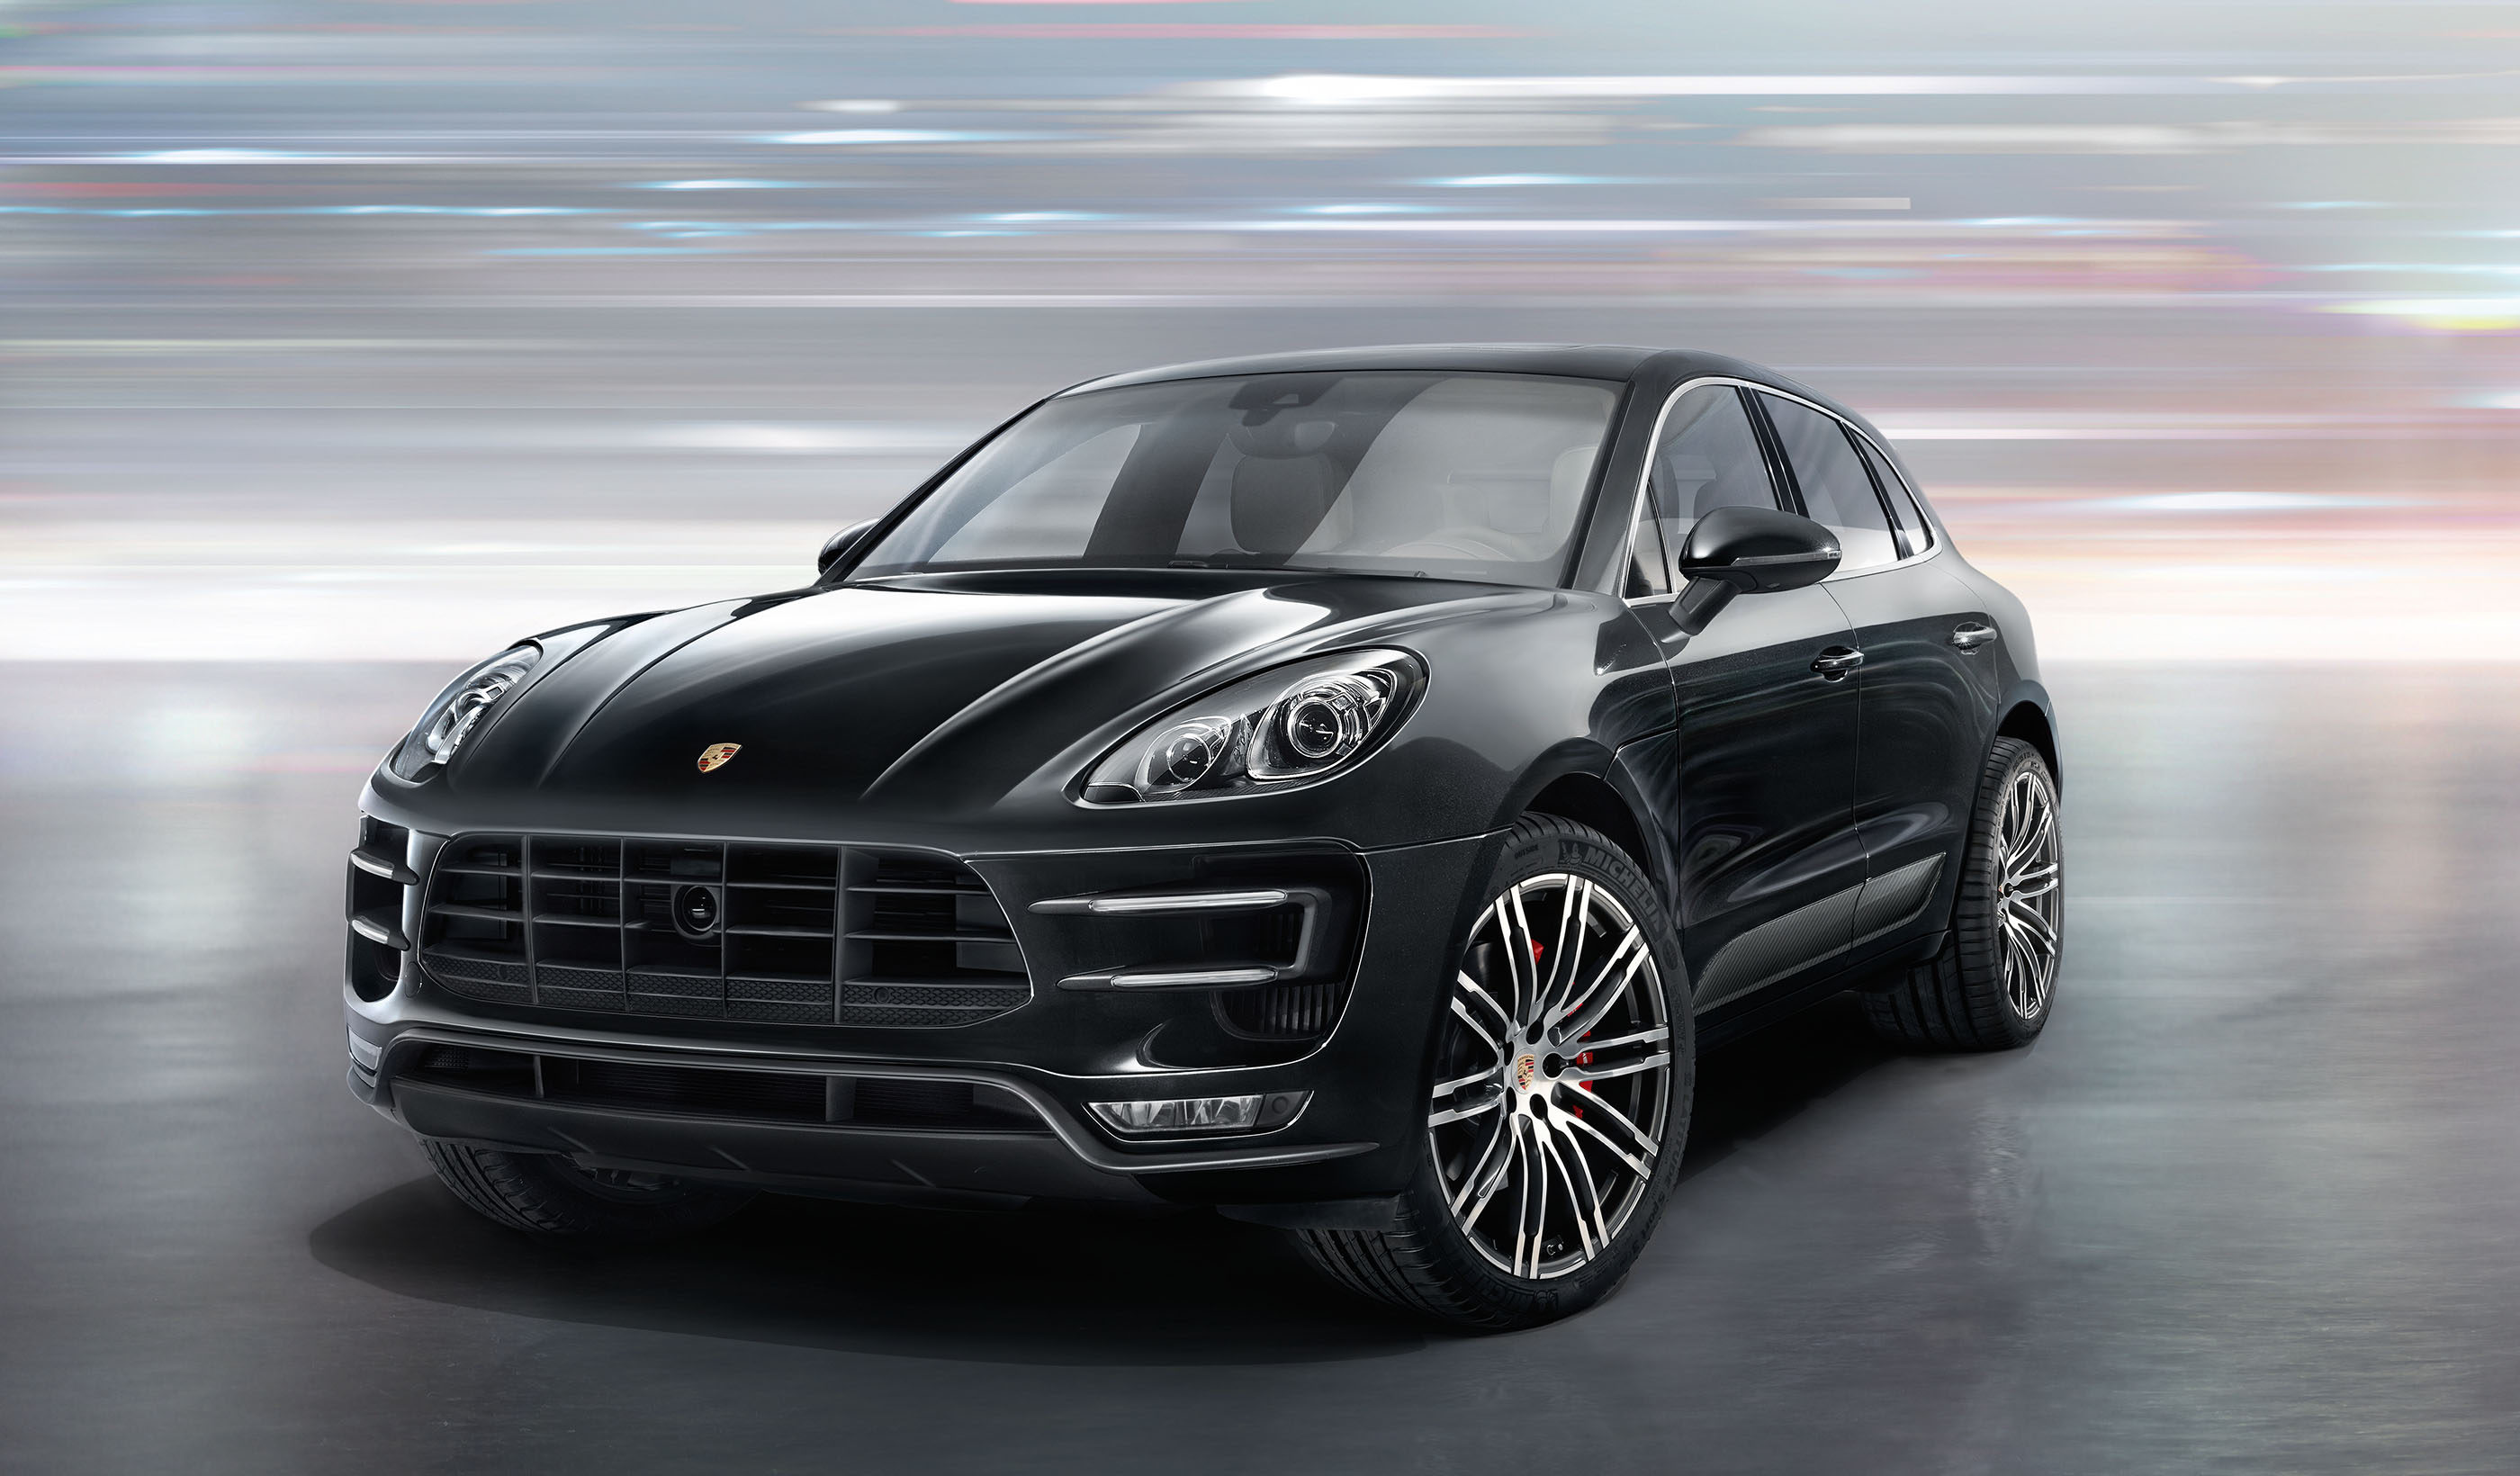 new model perspective 2017 porsche macan turbo premier financial services. Black Bedroom Furniture Sets. Home Design Ideas